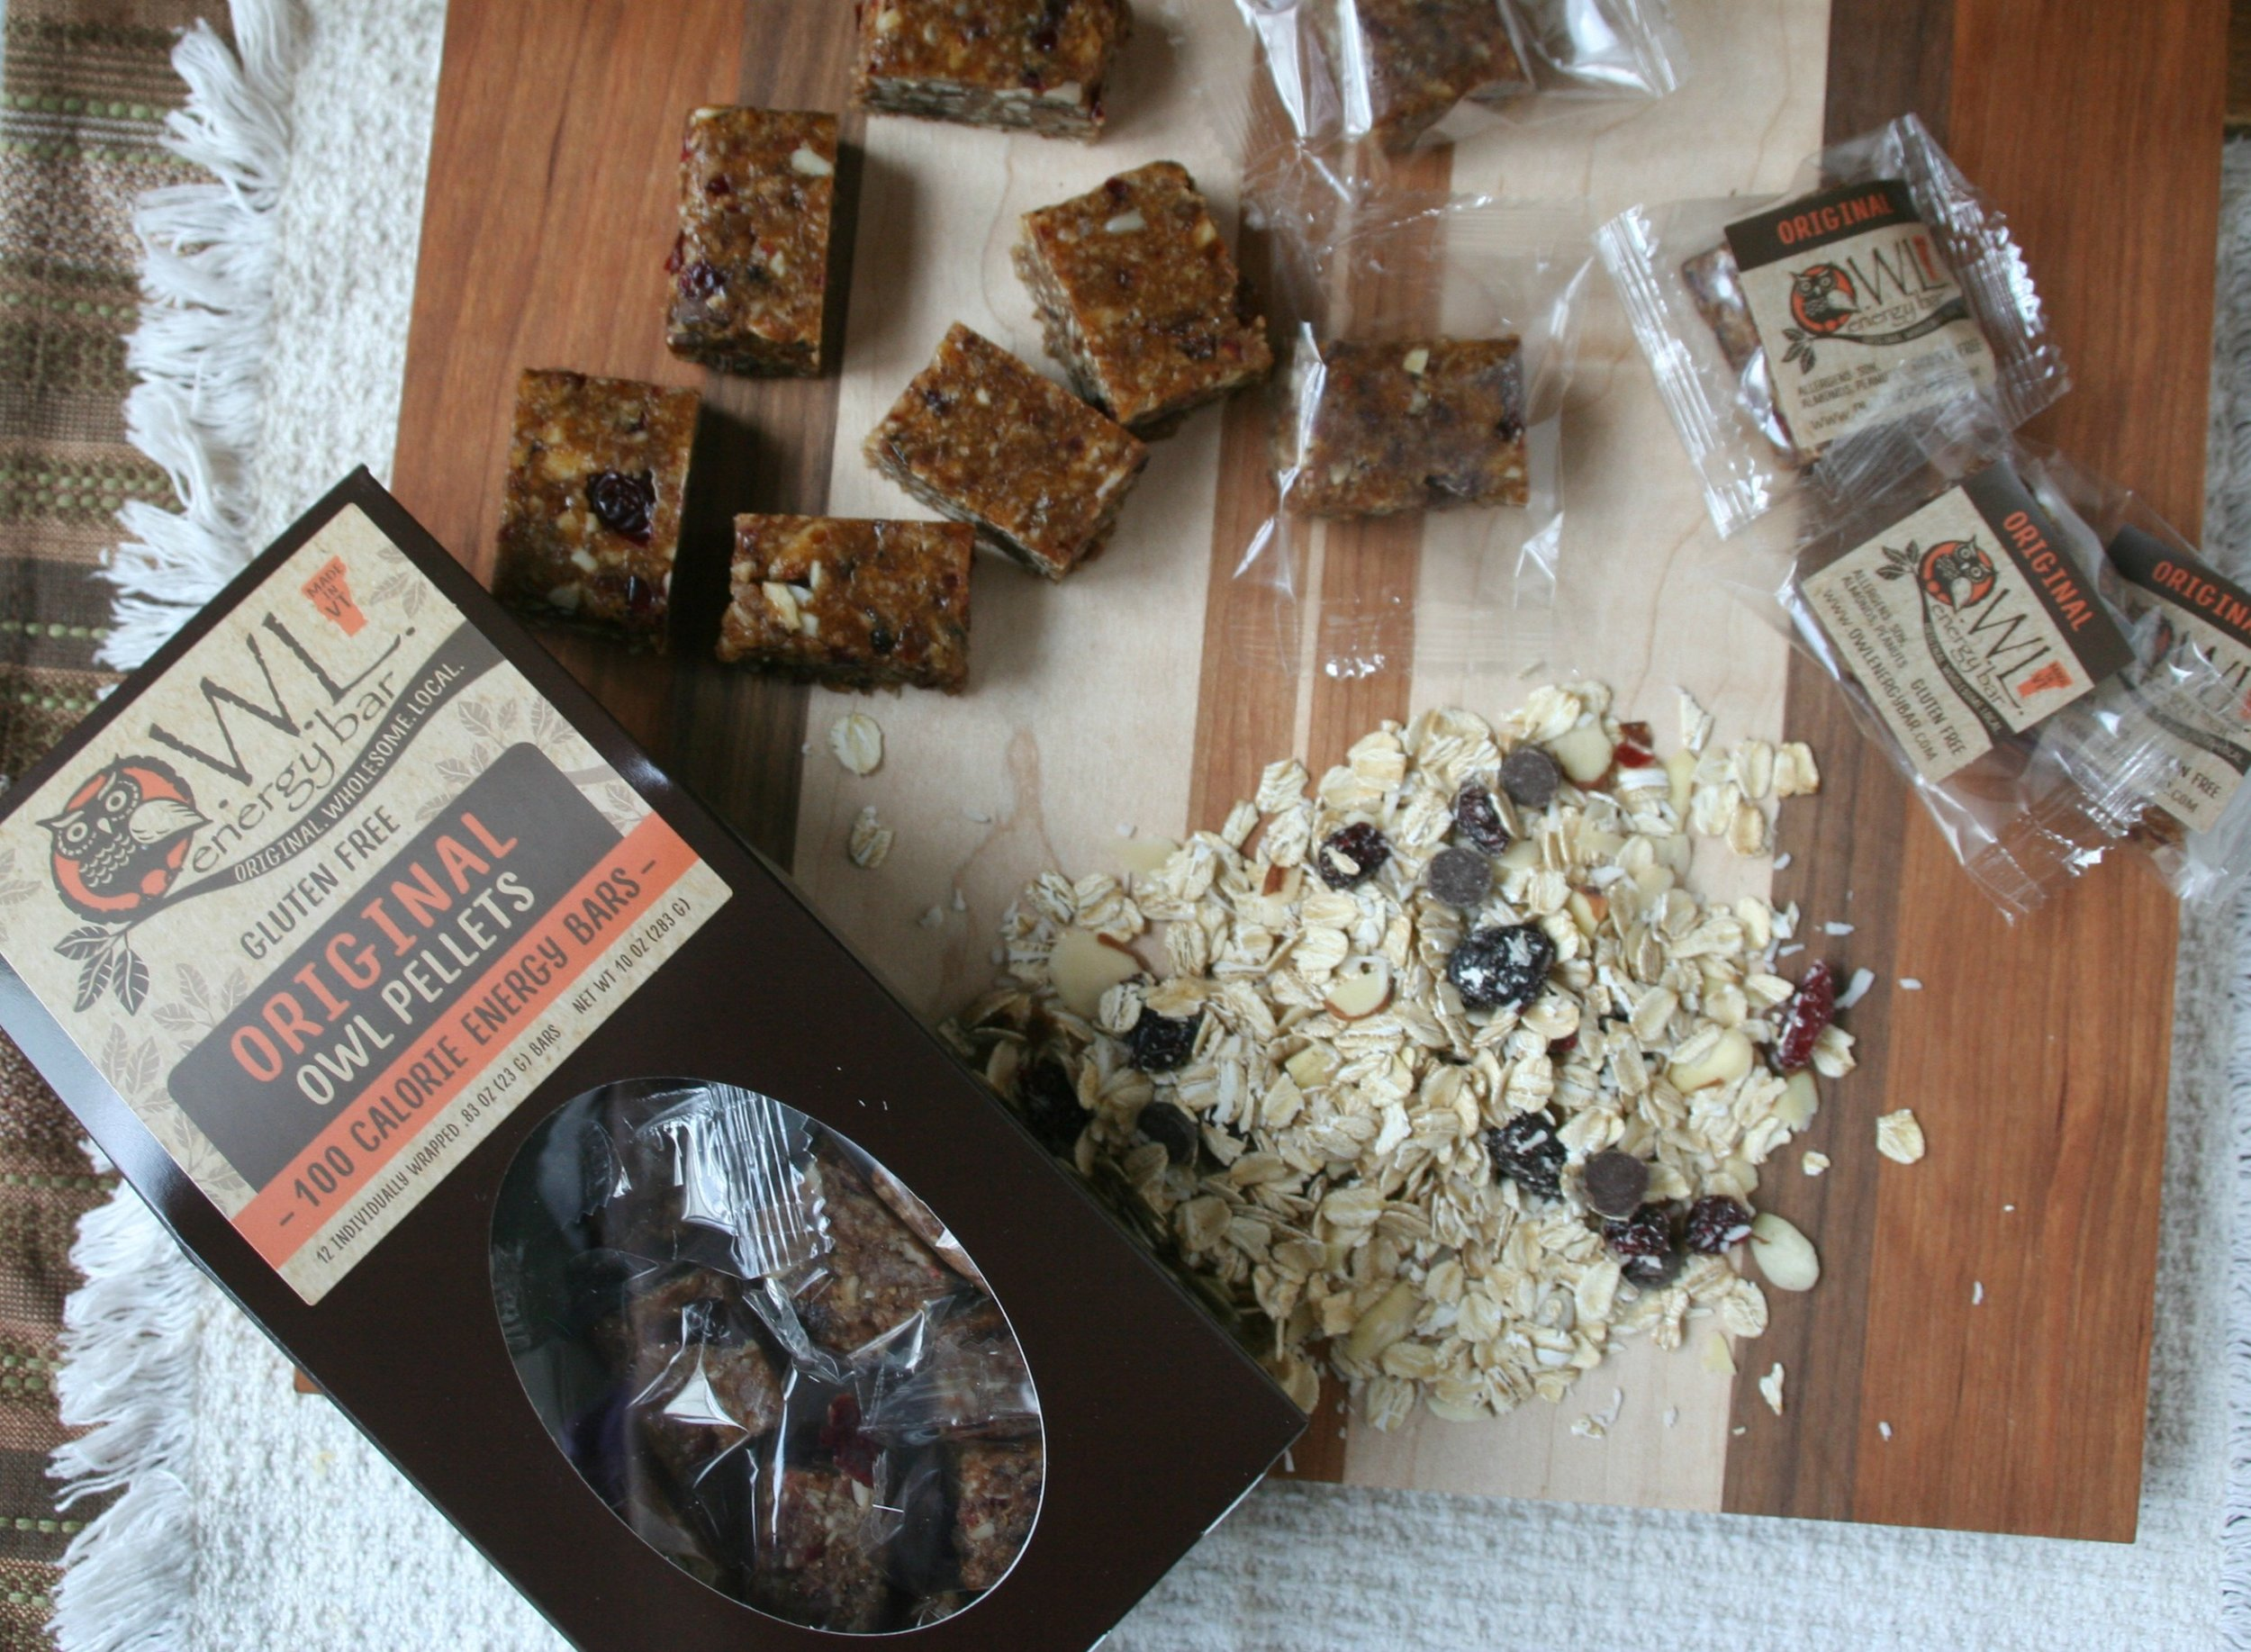 - Handcrafted energy bars with whole food ingredients specifically chosen to support your natural energy levels